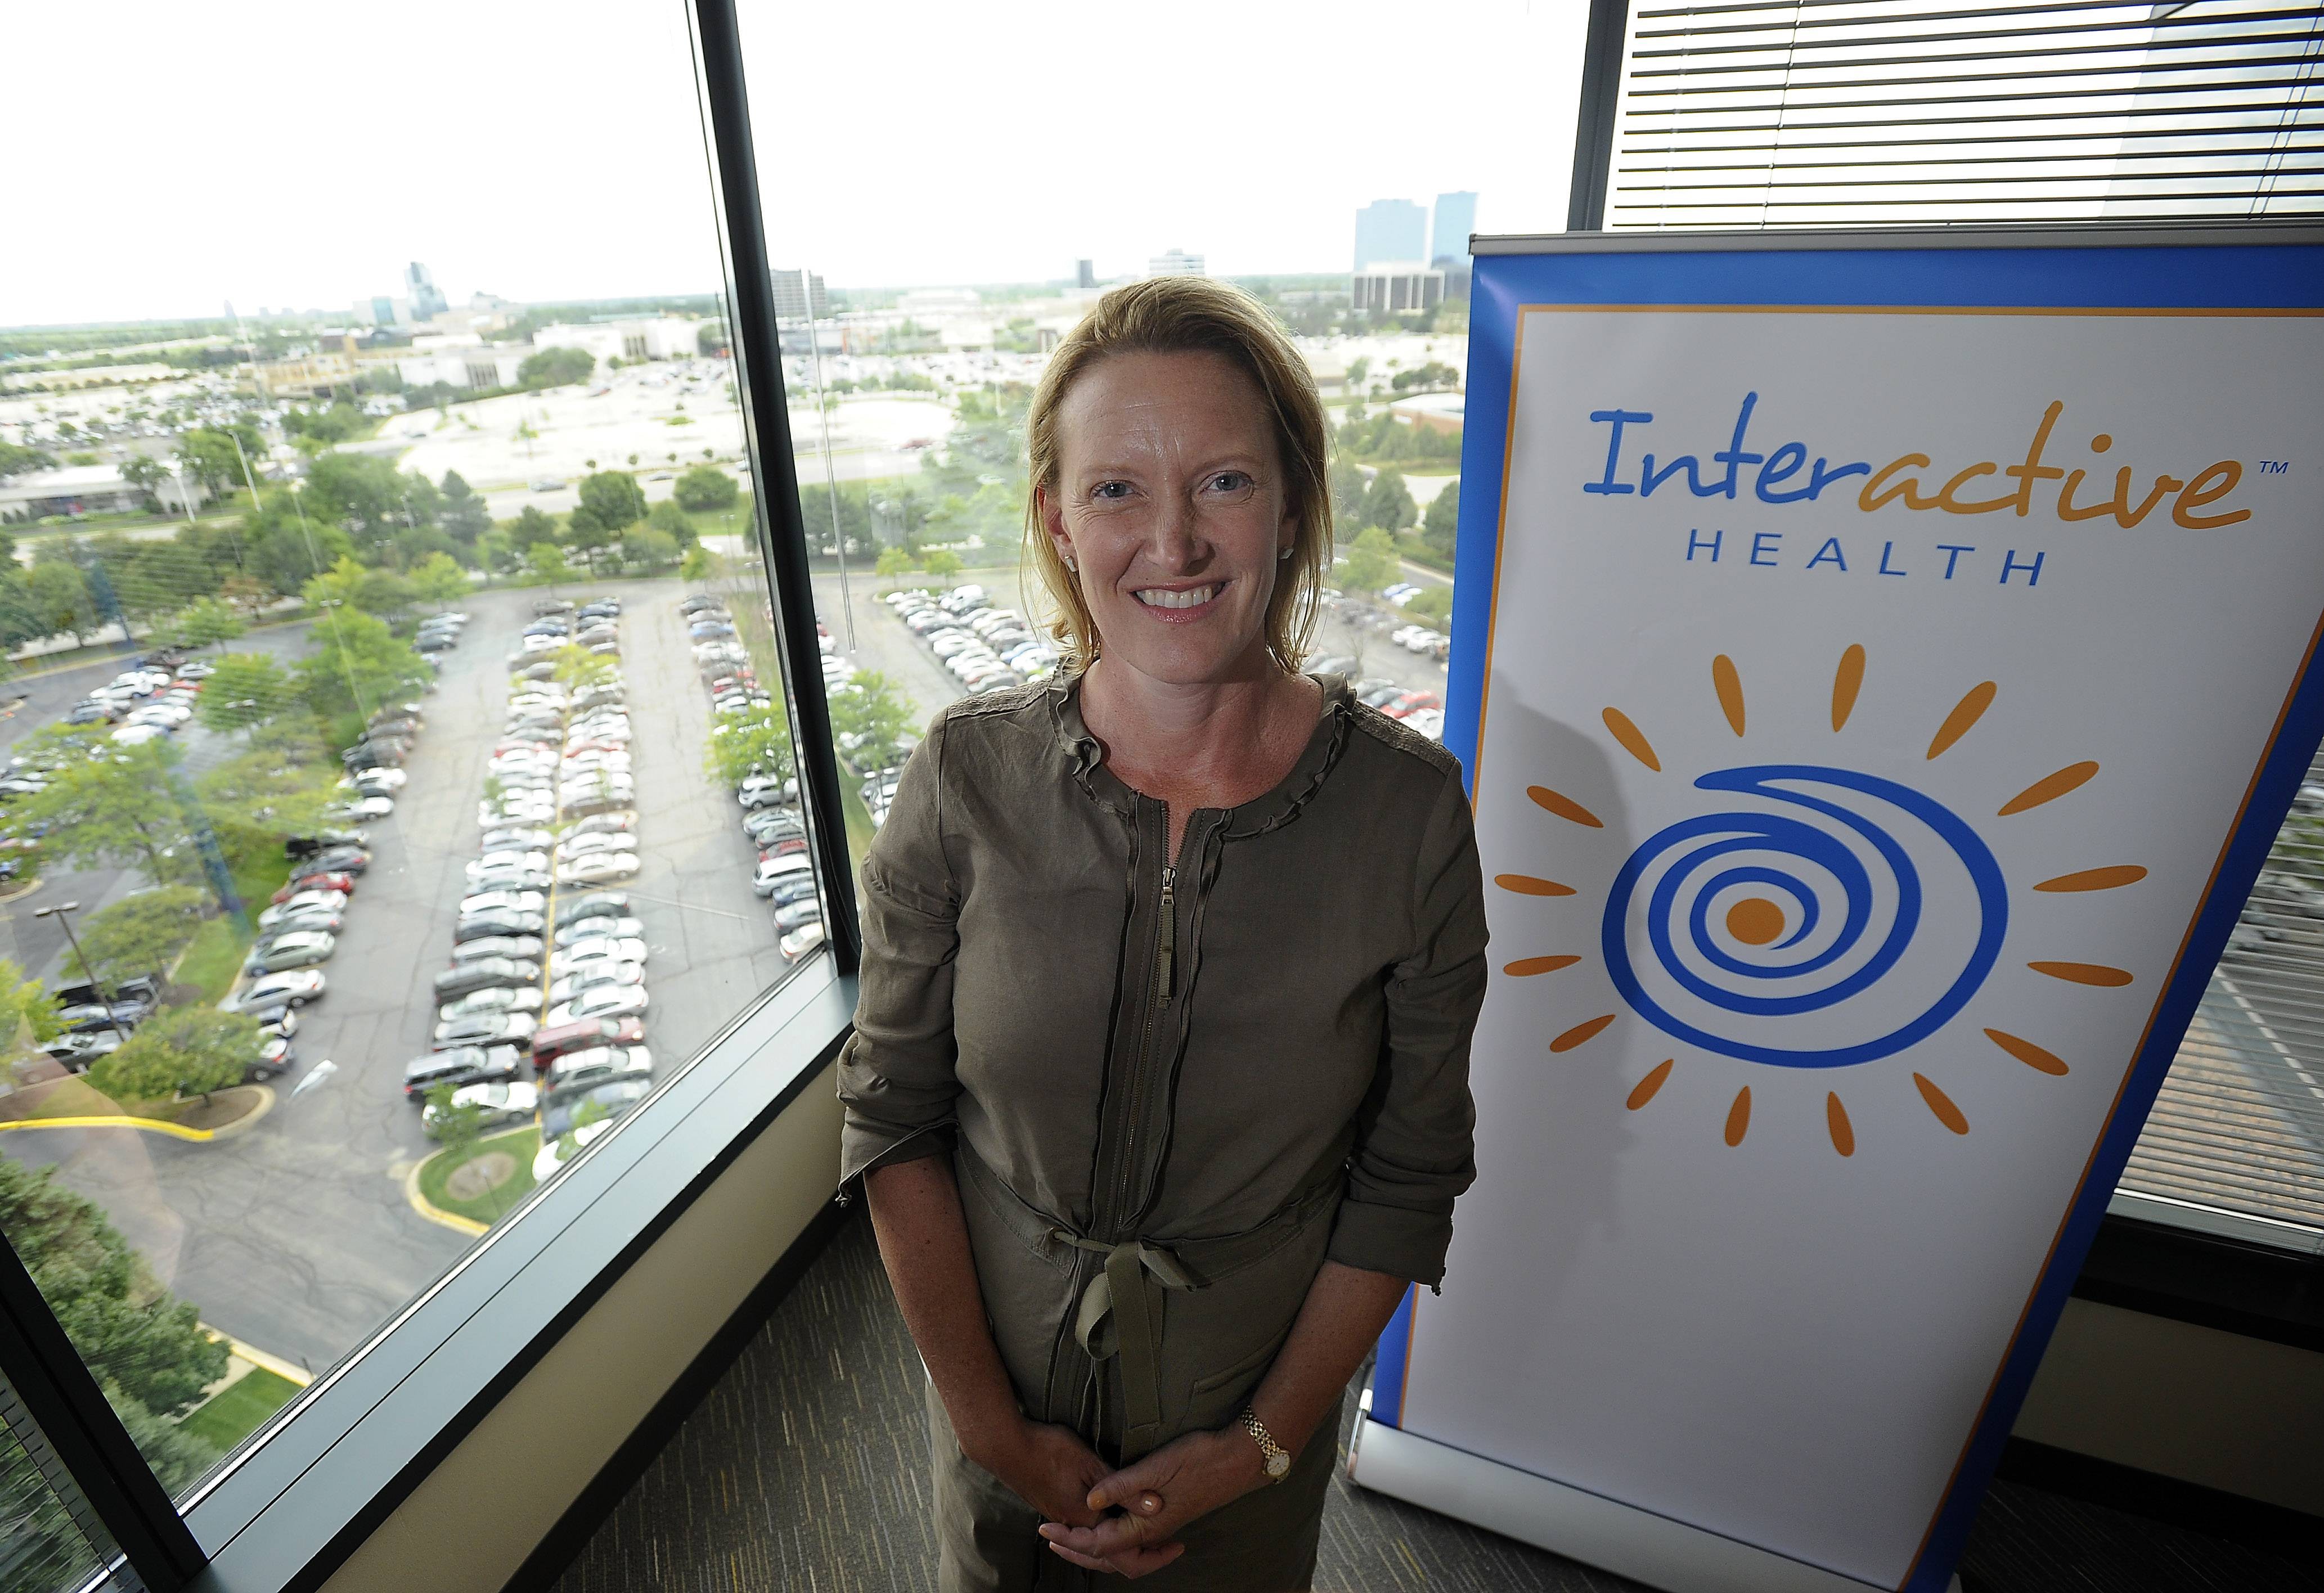 Cathy Kenworthy, president and CEO of Interactive Health, operates in Schaumburg.